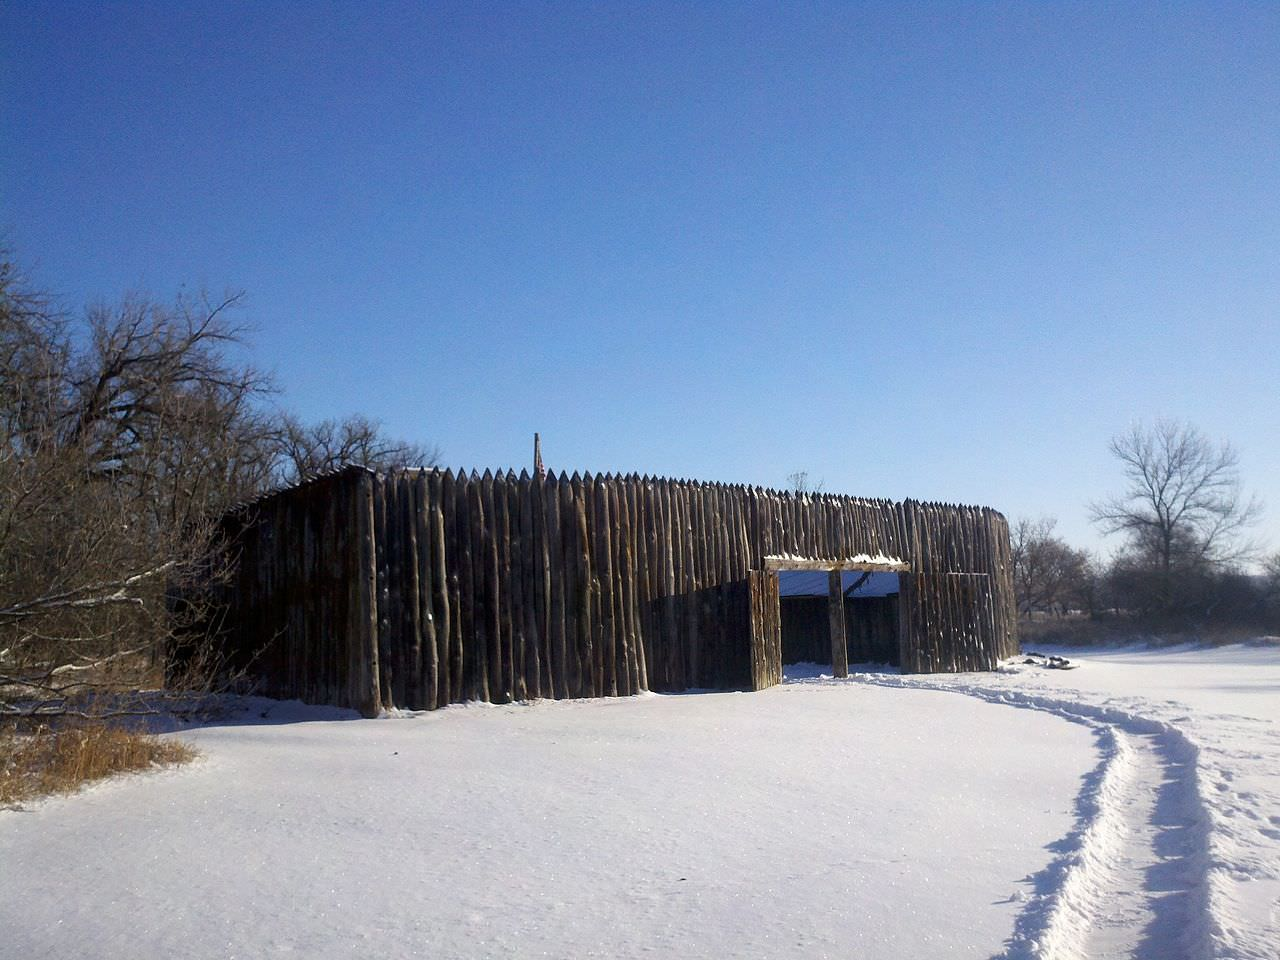 photo: The reconstruction of Fort Mandan in winter. Photo by Gooseterrain2/wiki.